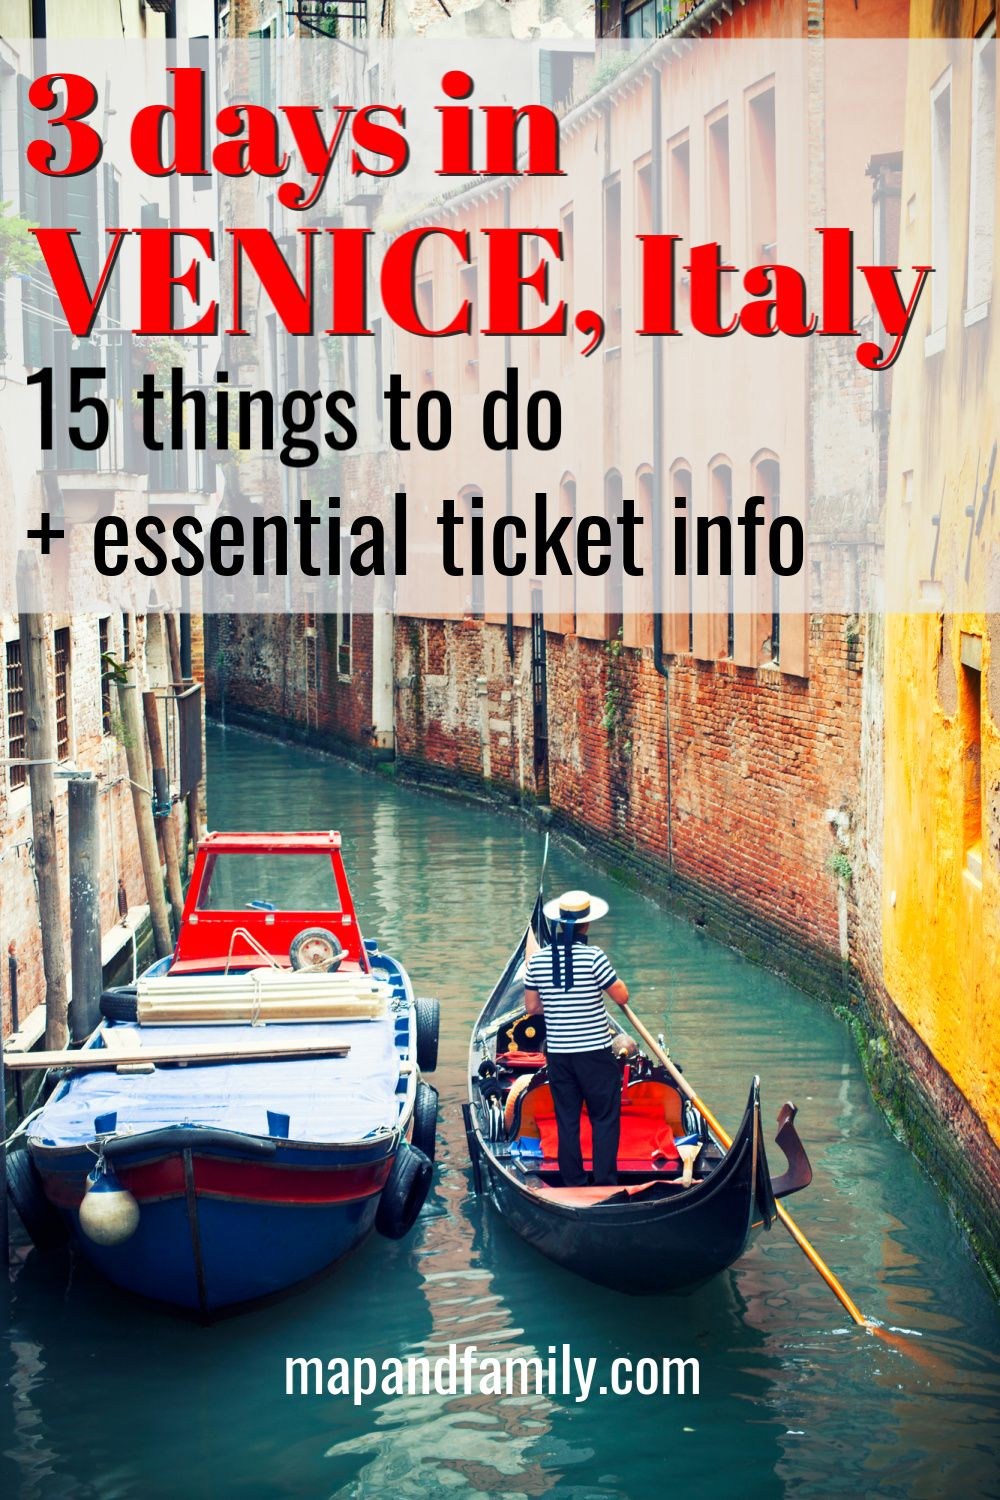 Photo of Venice, Italy 15 things to do and see